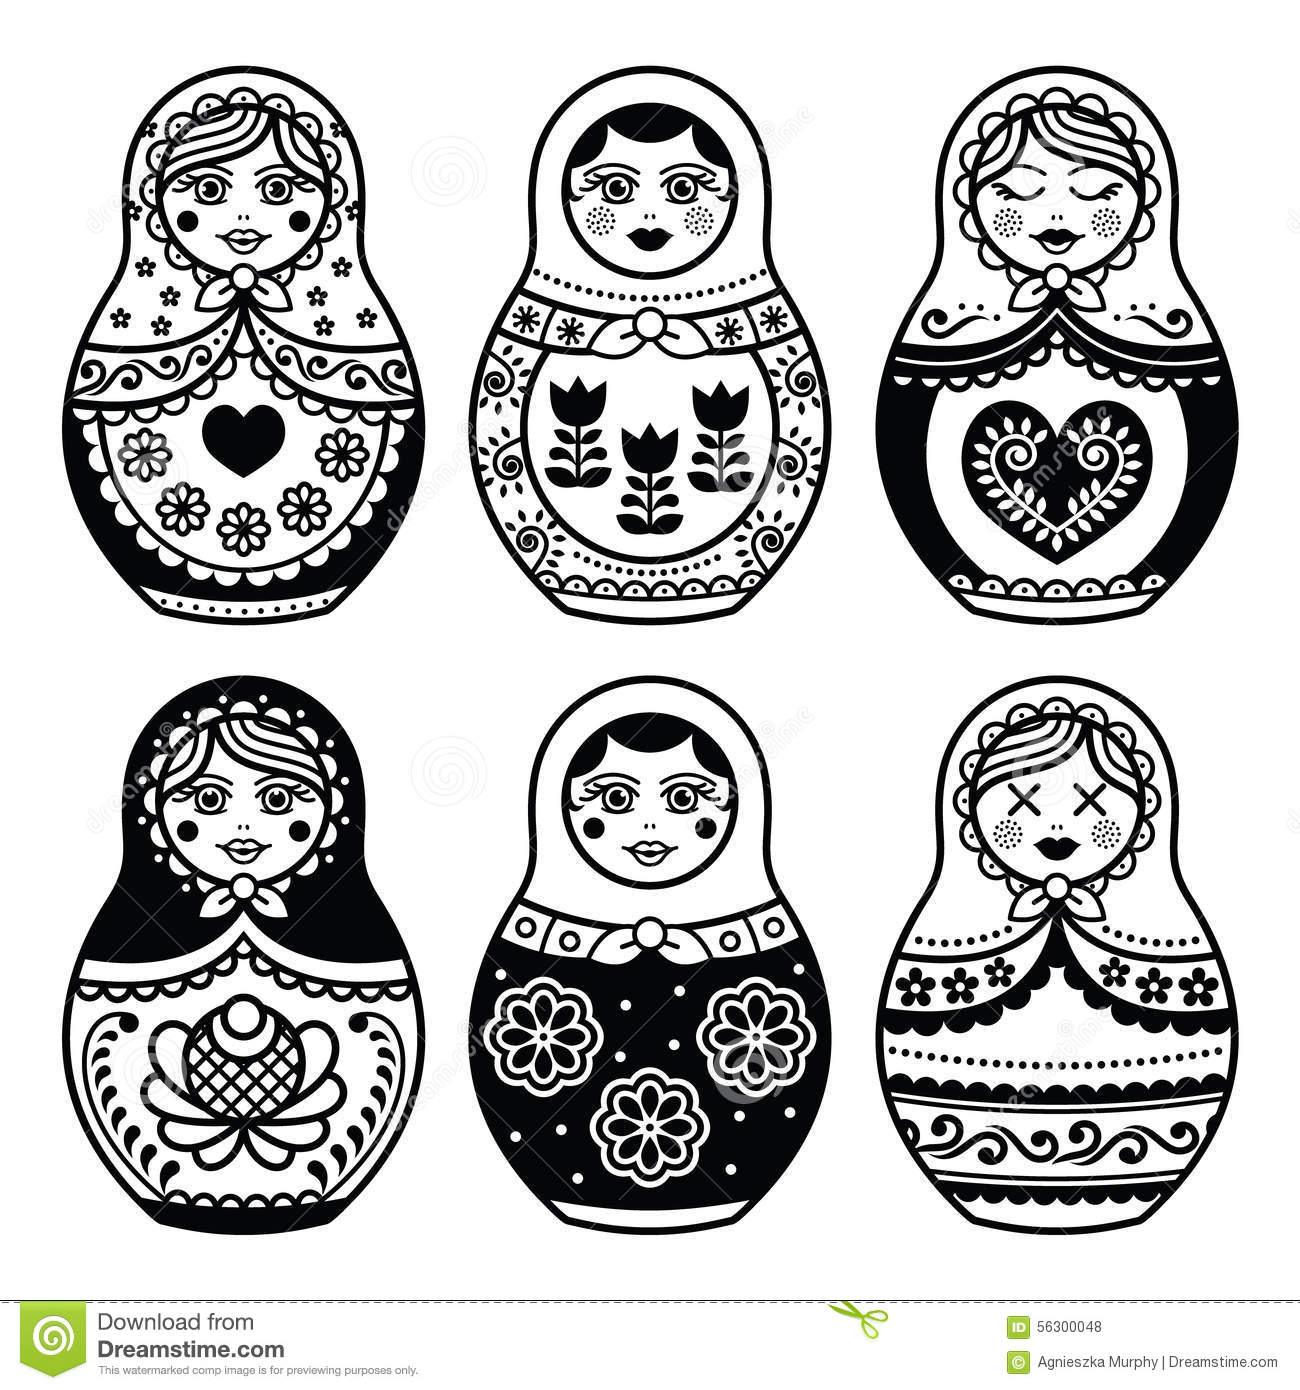 matryoshka russian doll icons set stock illustration illustration of europe figure 56300048. Black Bedroom Furniture Sets. Home Design Ideas